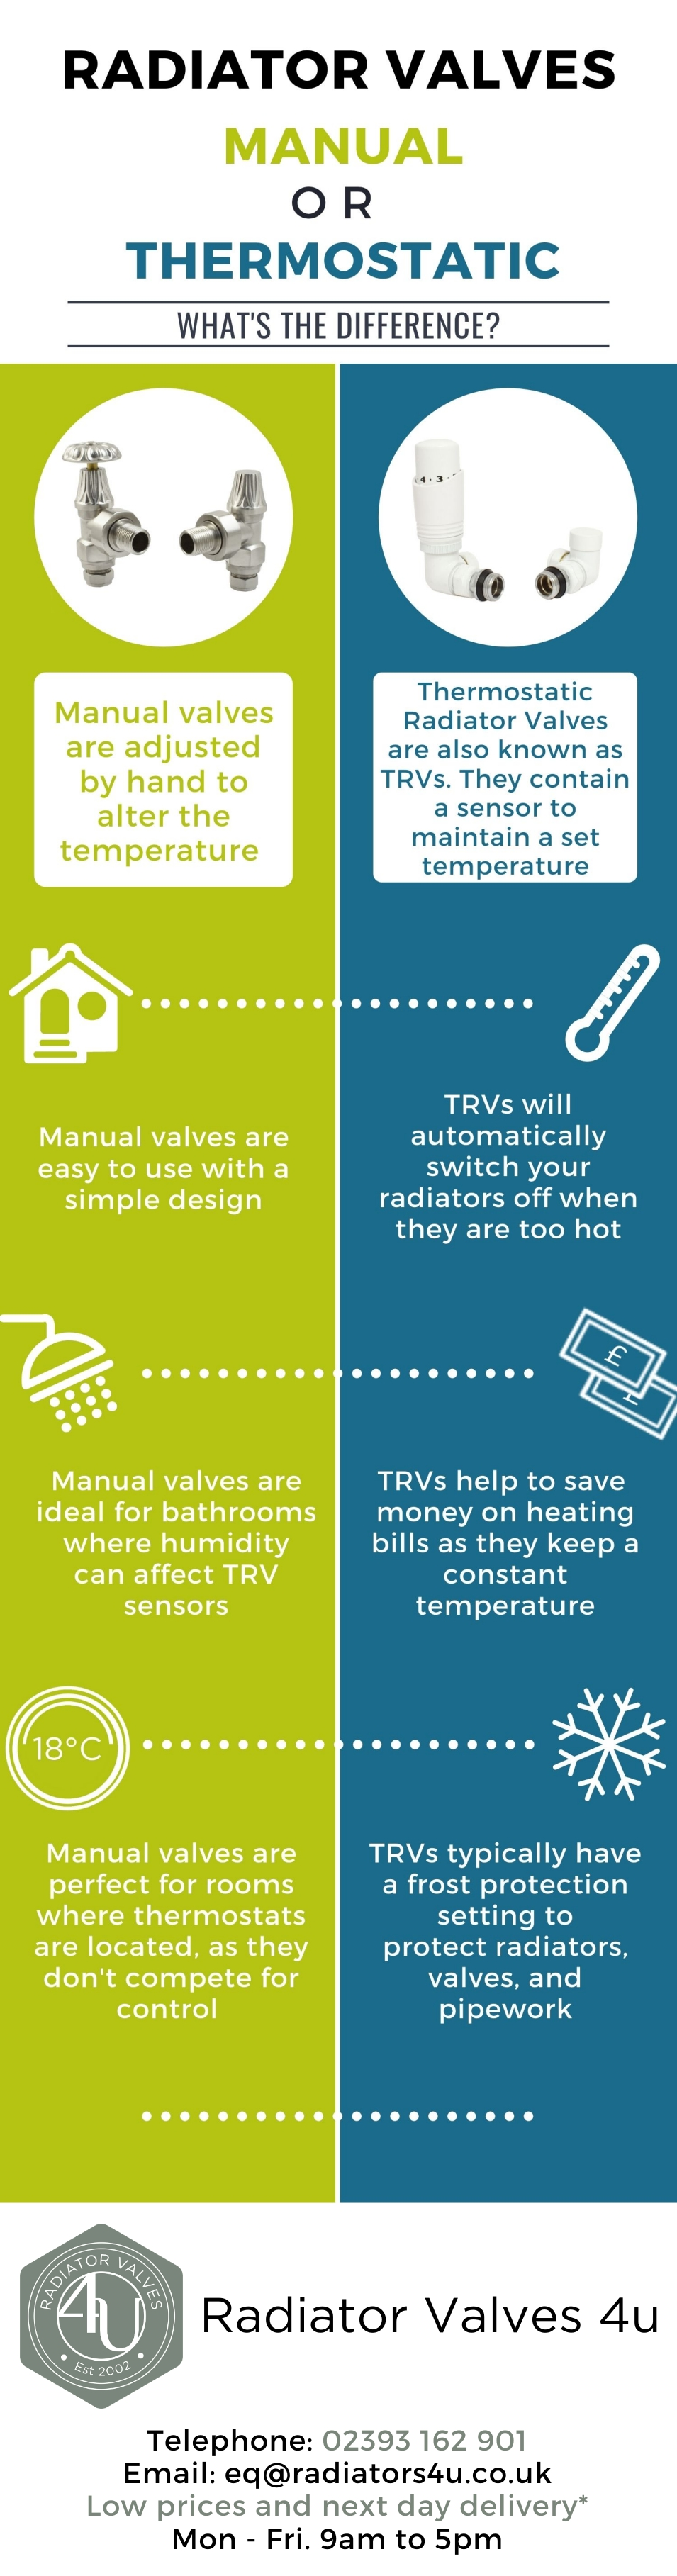 Infographic - Radiator Valves - Manual or thermostatic?